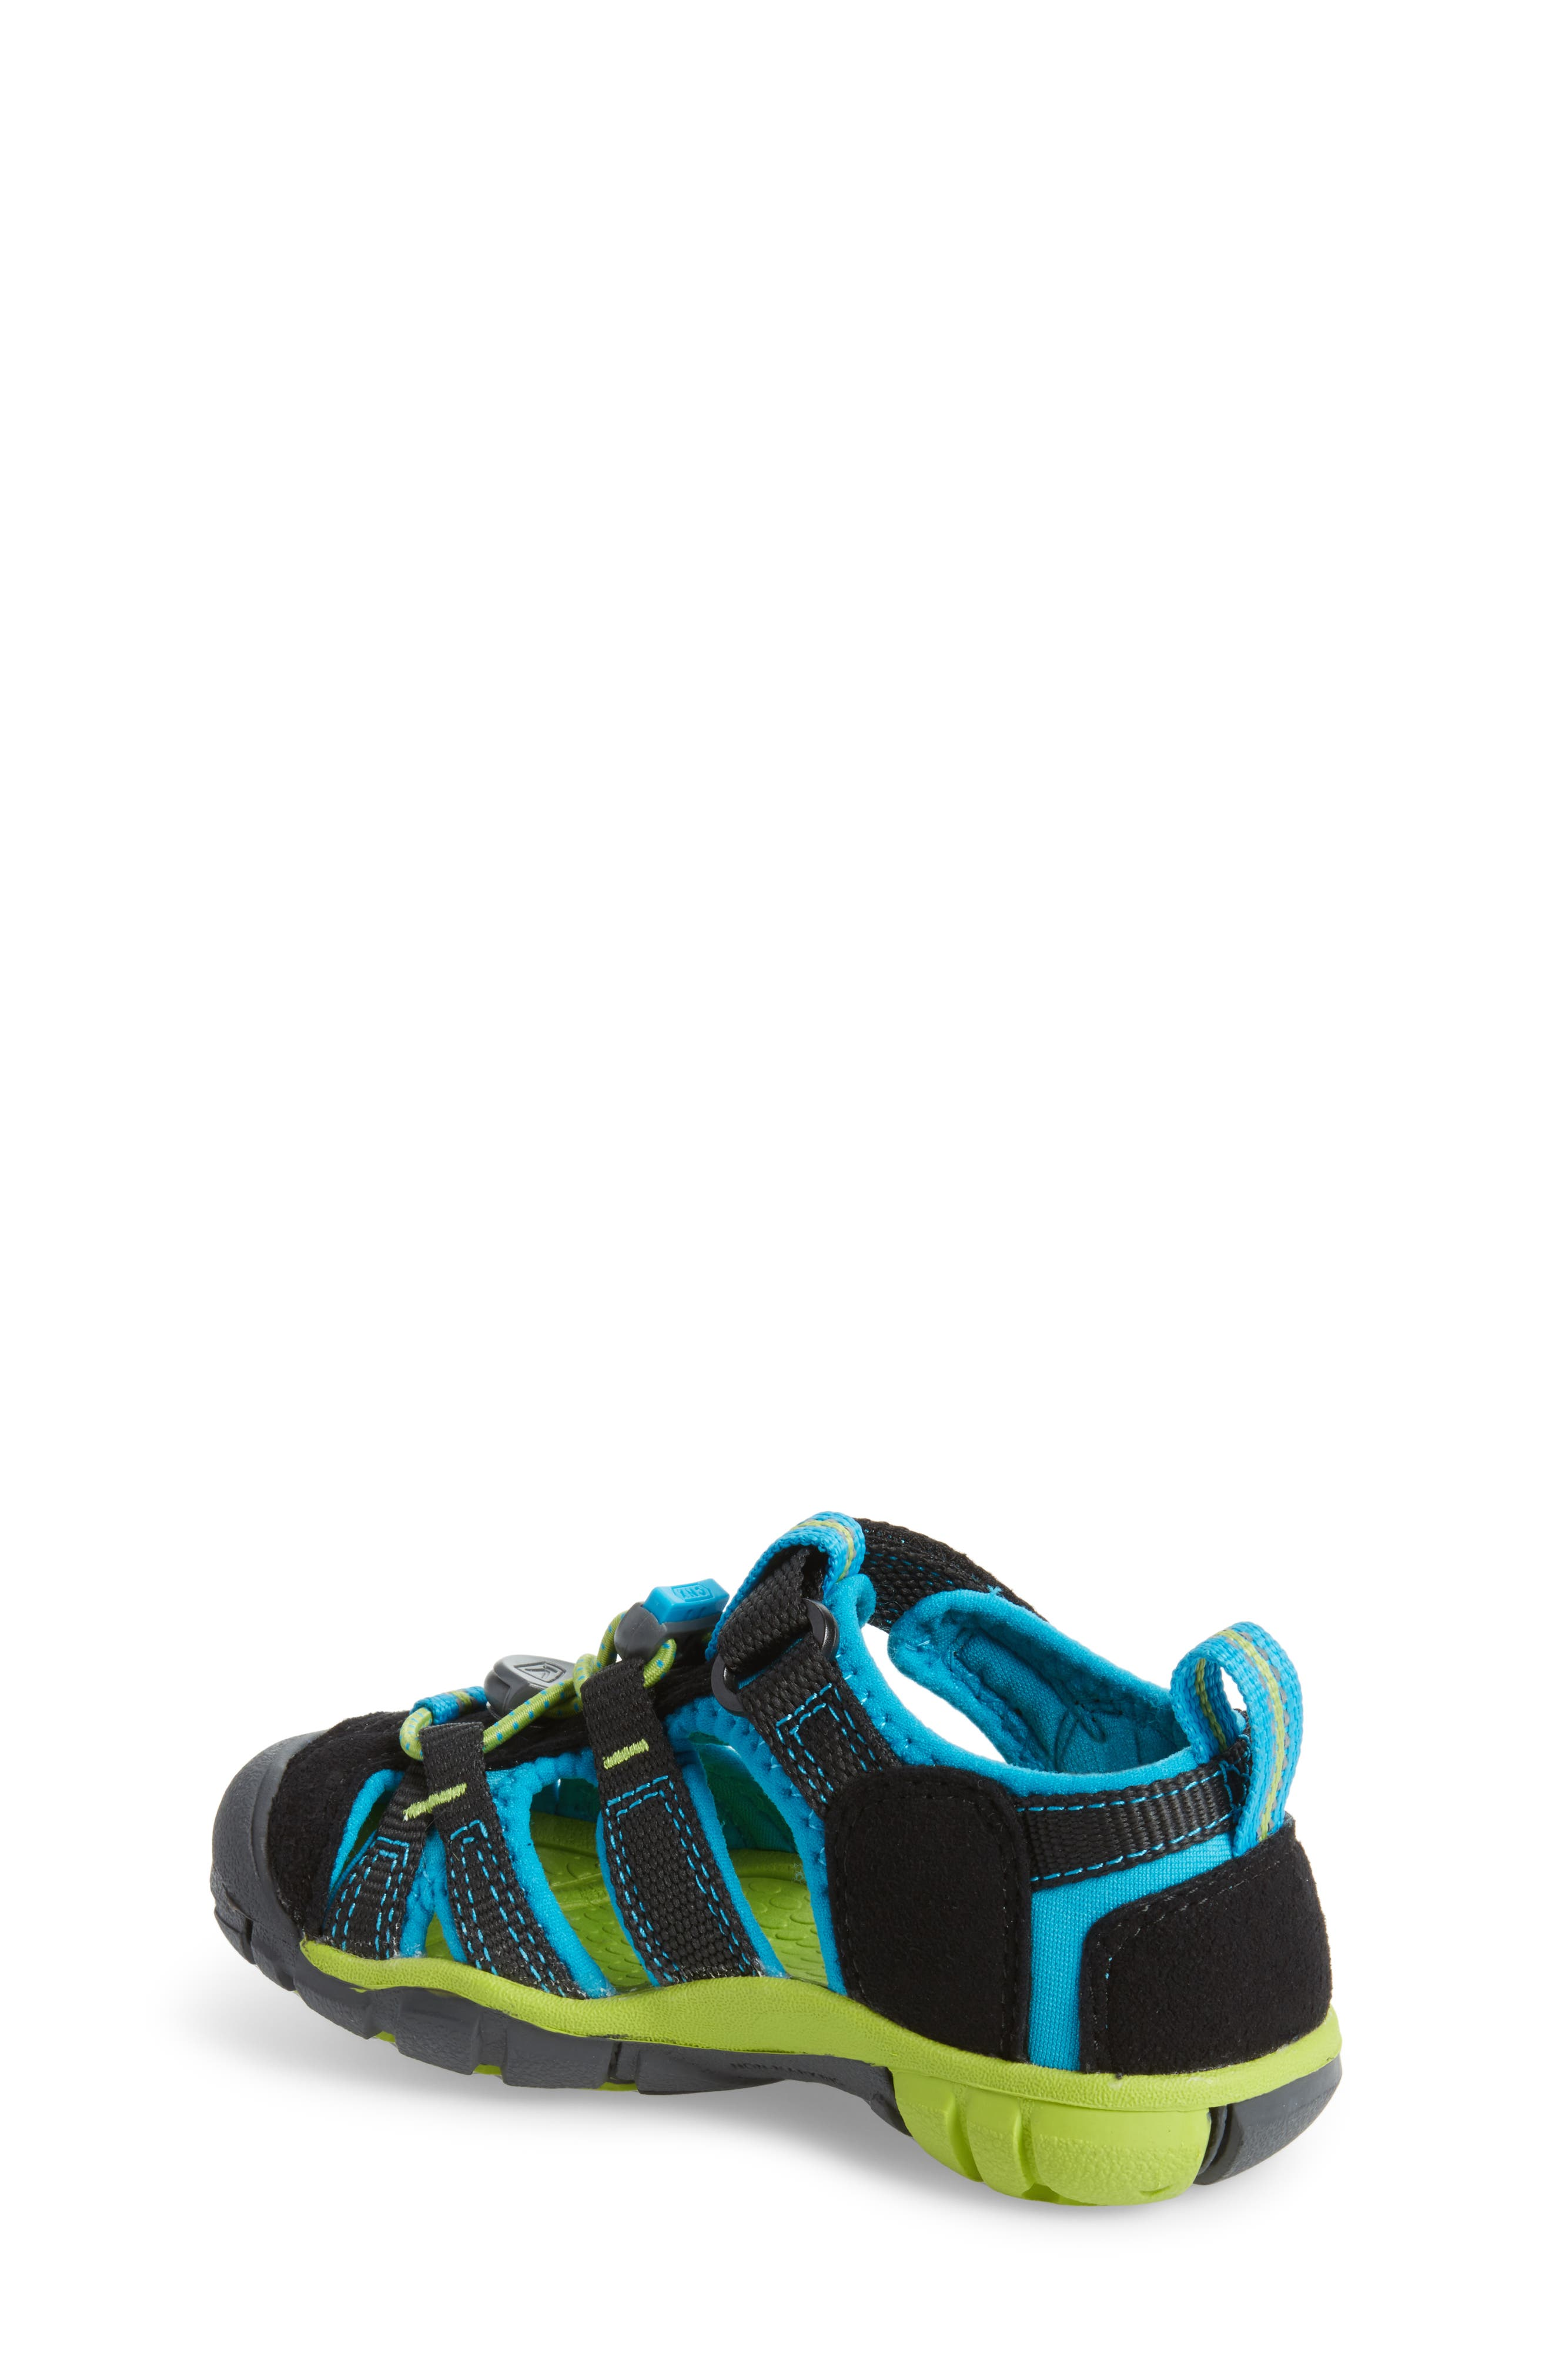 KEEN, 'Seacamp II' Water Friendly Sandal, Alternate thumbnail 2, color, BLACK/ BLUE DANUBE